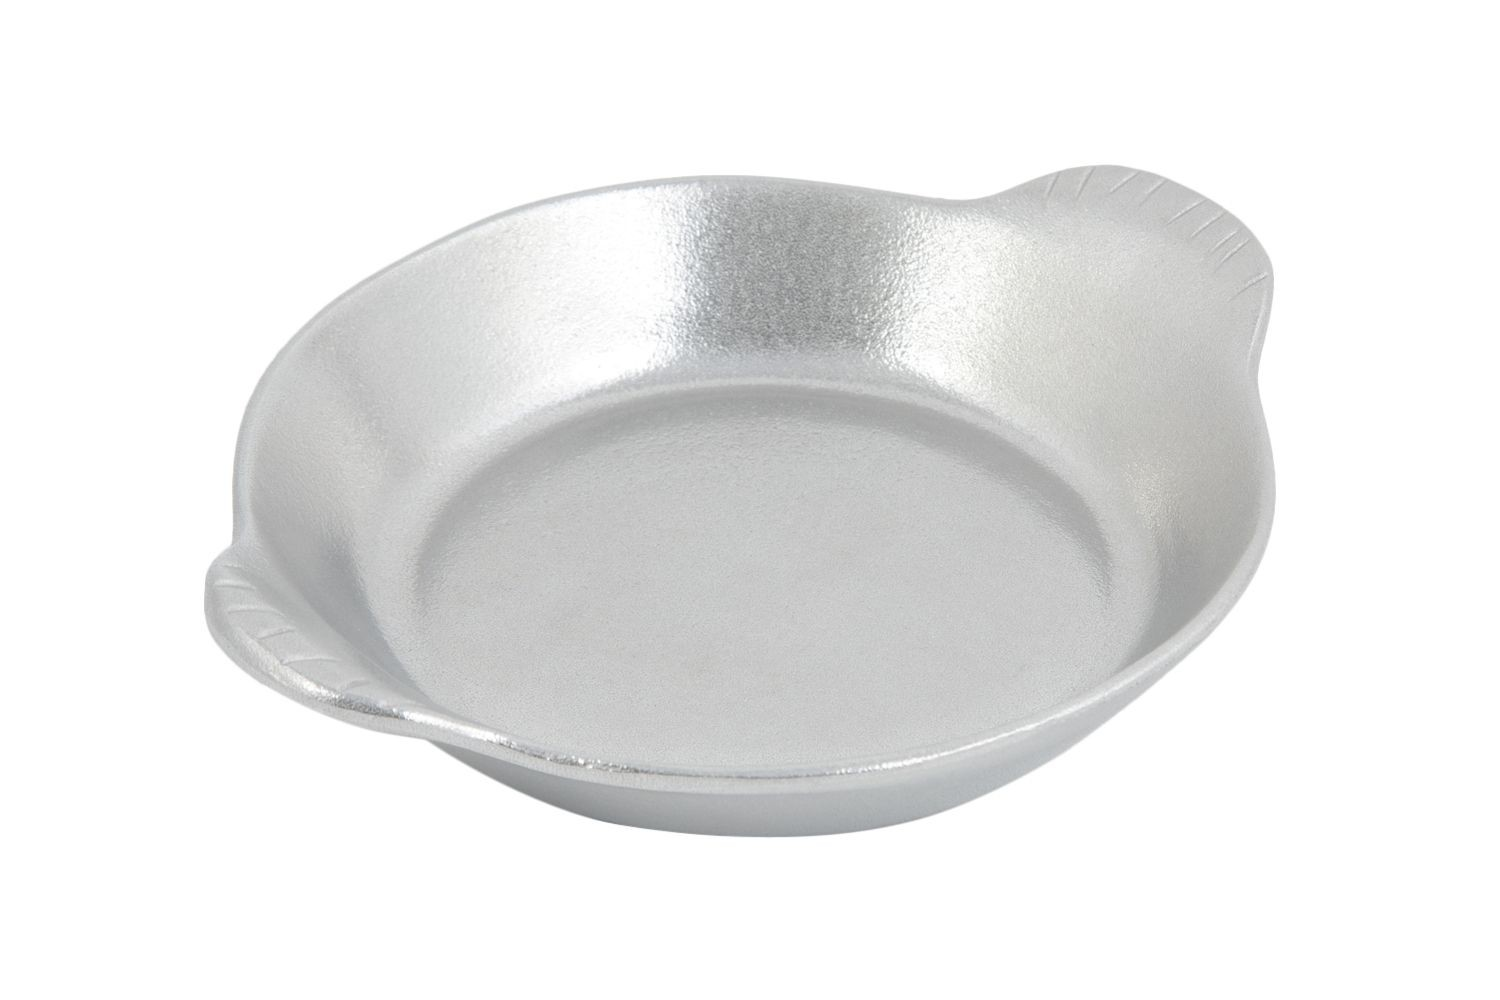 "Bon Chef 5018P Small Round Shirred Egg Dish, Pewter Glo 7 1/2"" Dia., Set of 12"